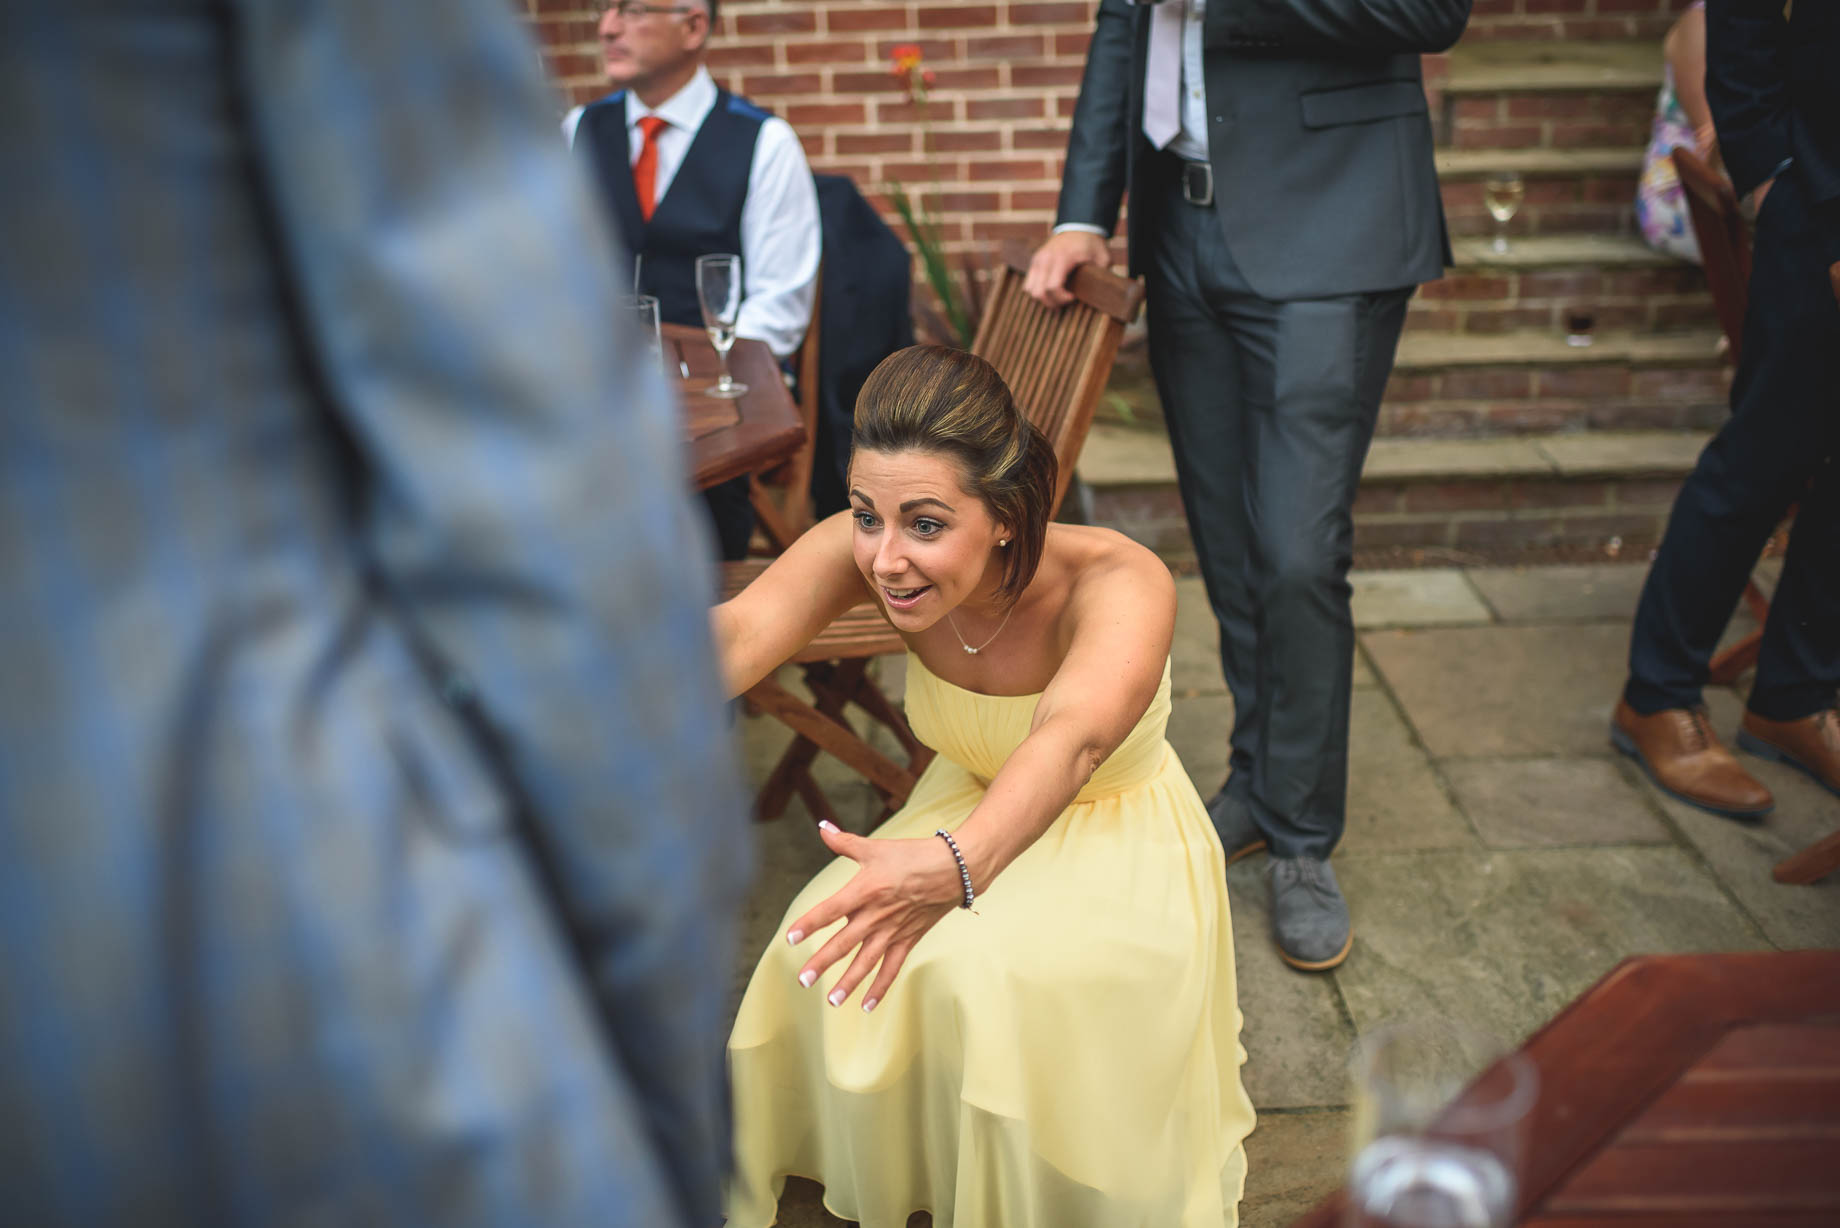 Luton Hoo wedding photography by Guy Collier Photography - Lauren and Gem (165 of 178)